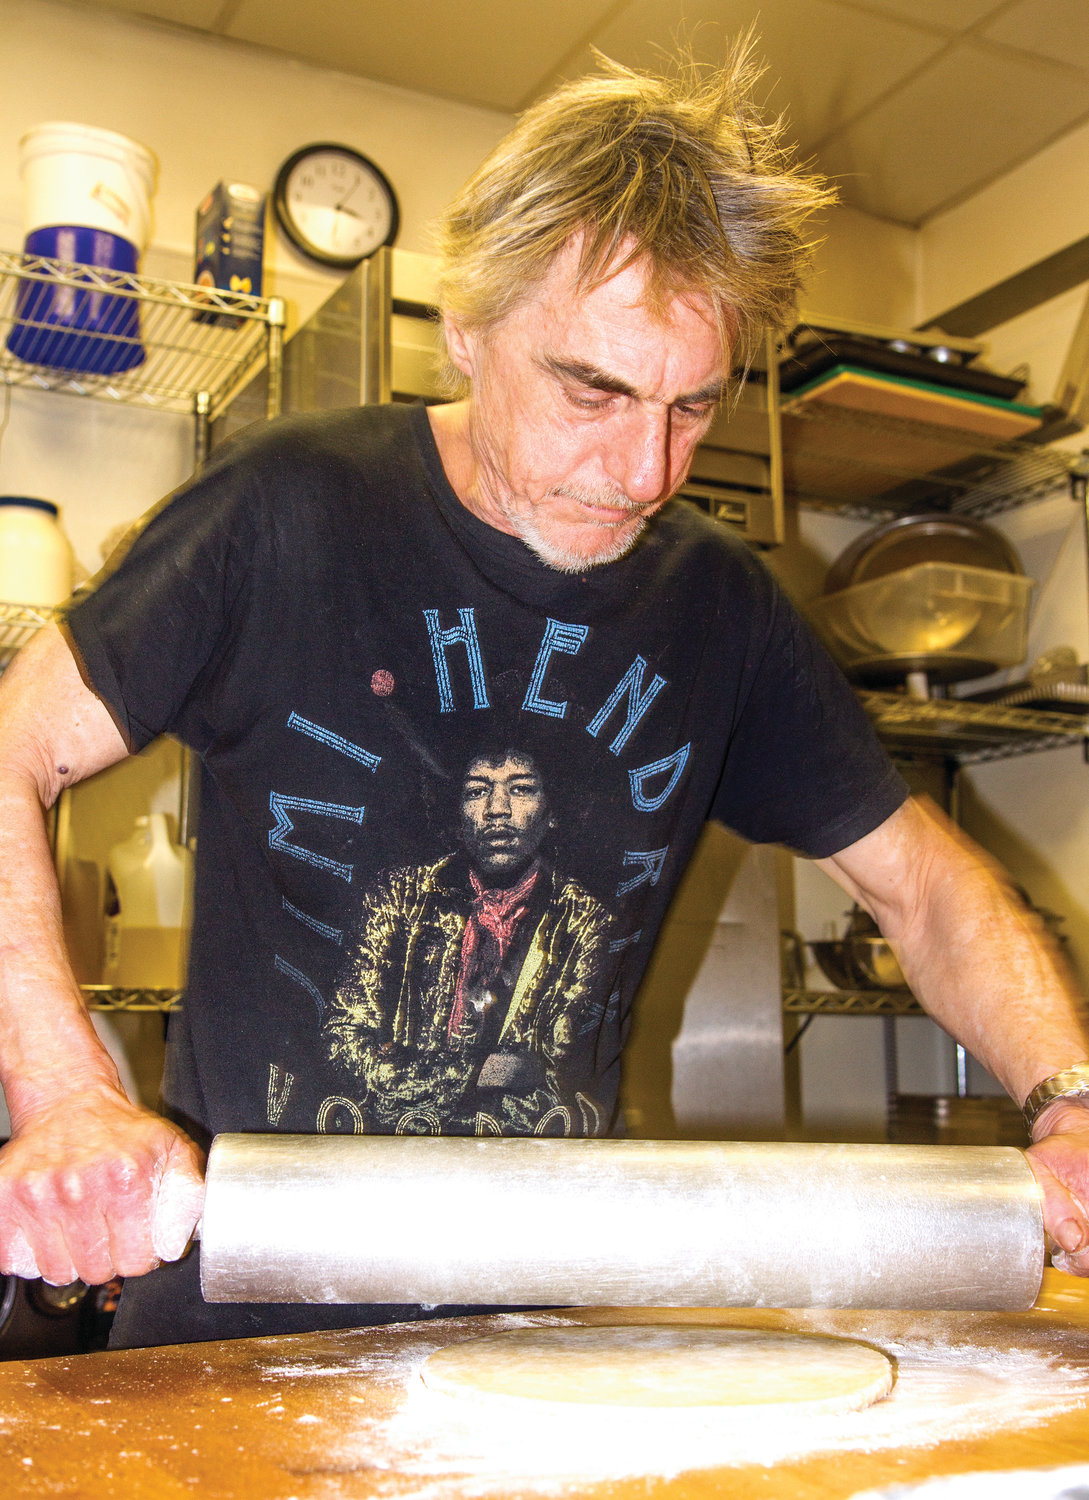 Tim Roth, owner of Hillbottom Pie, insists on making his pies fresh for customers each day.